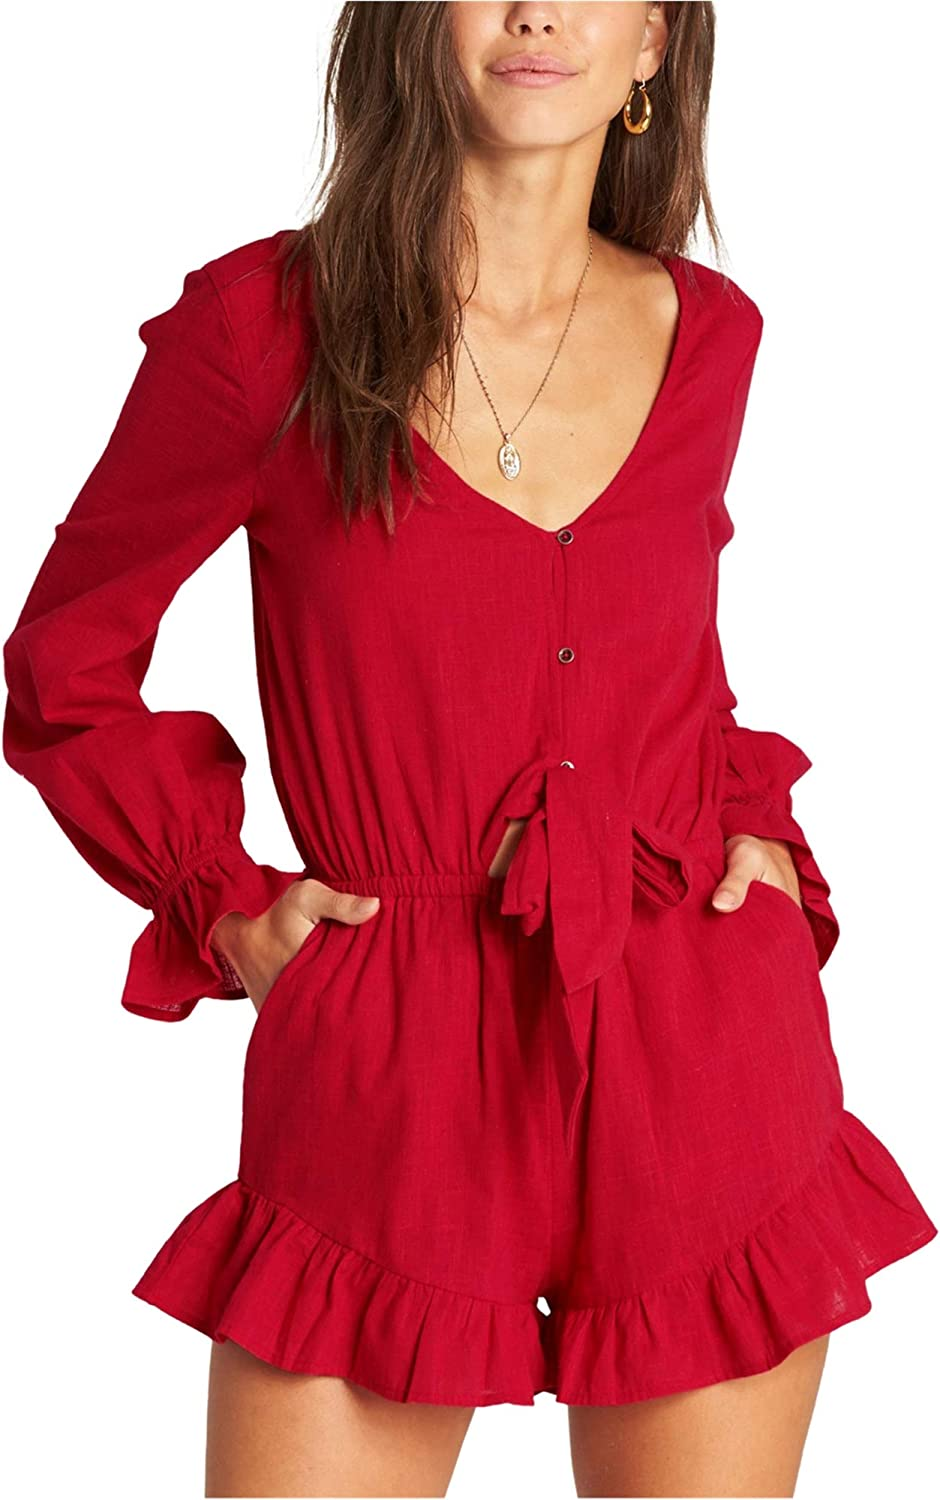 Factory outlet Billabong Women's Play Limited price Romper All Day